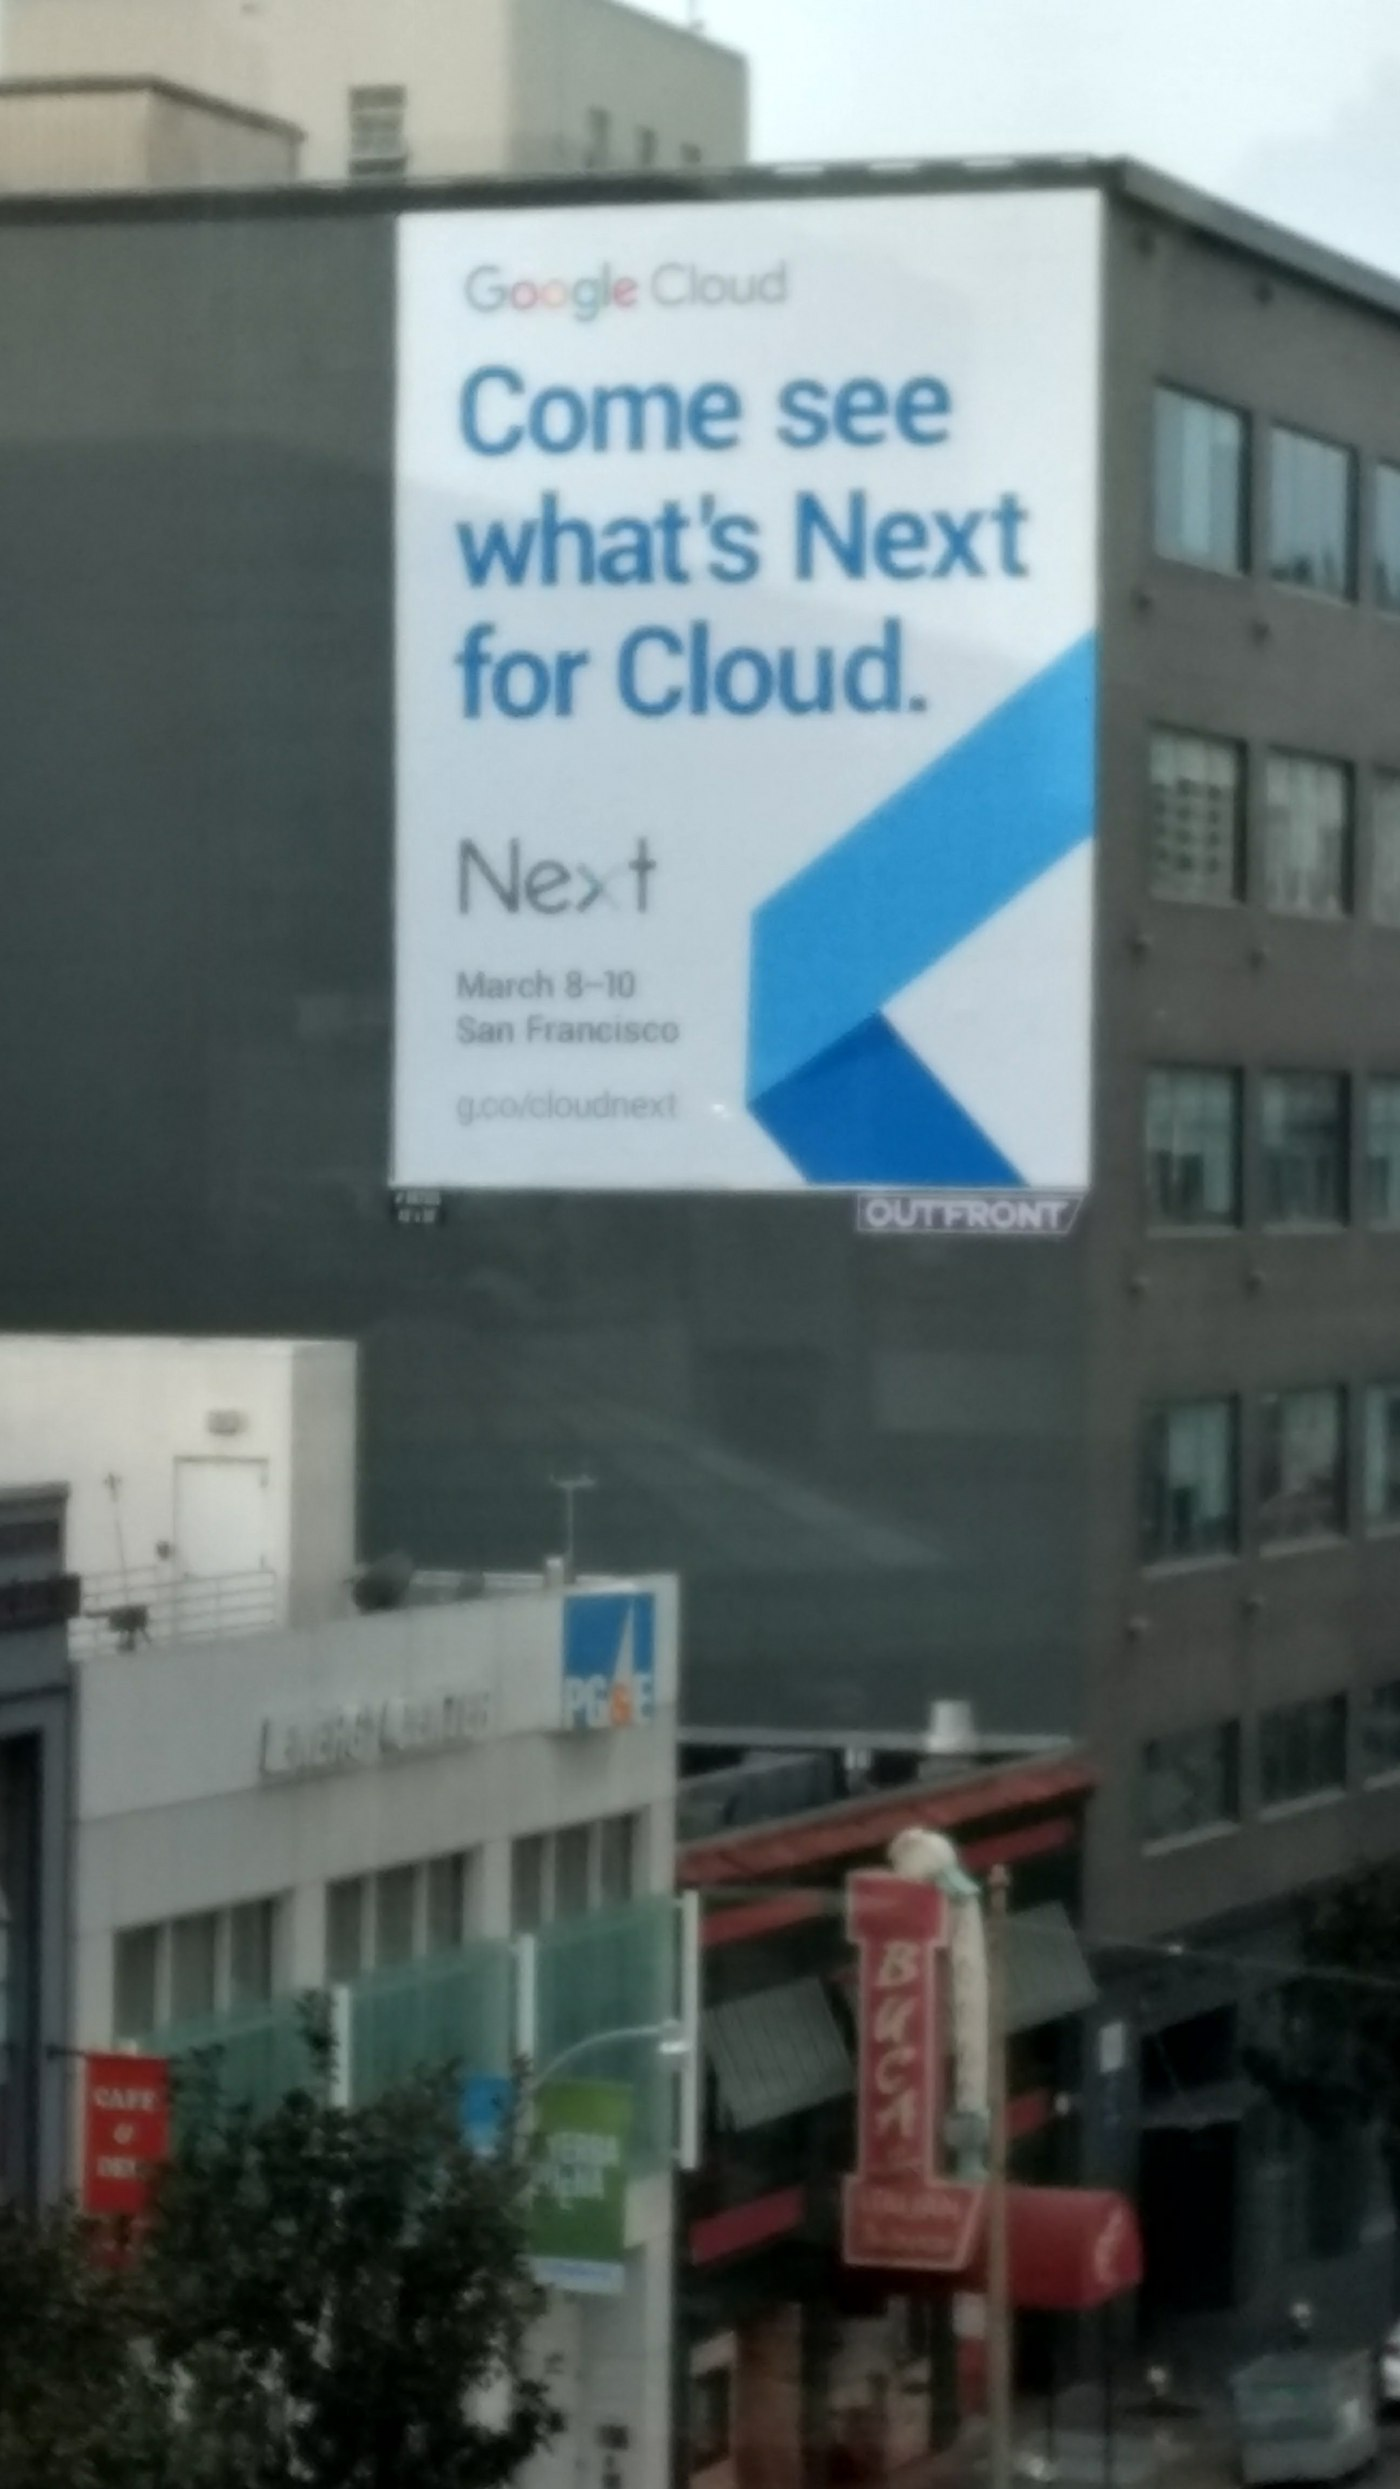 Google Cloud Next - The Key Thing to Security is a New Mindset